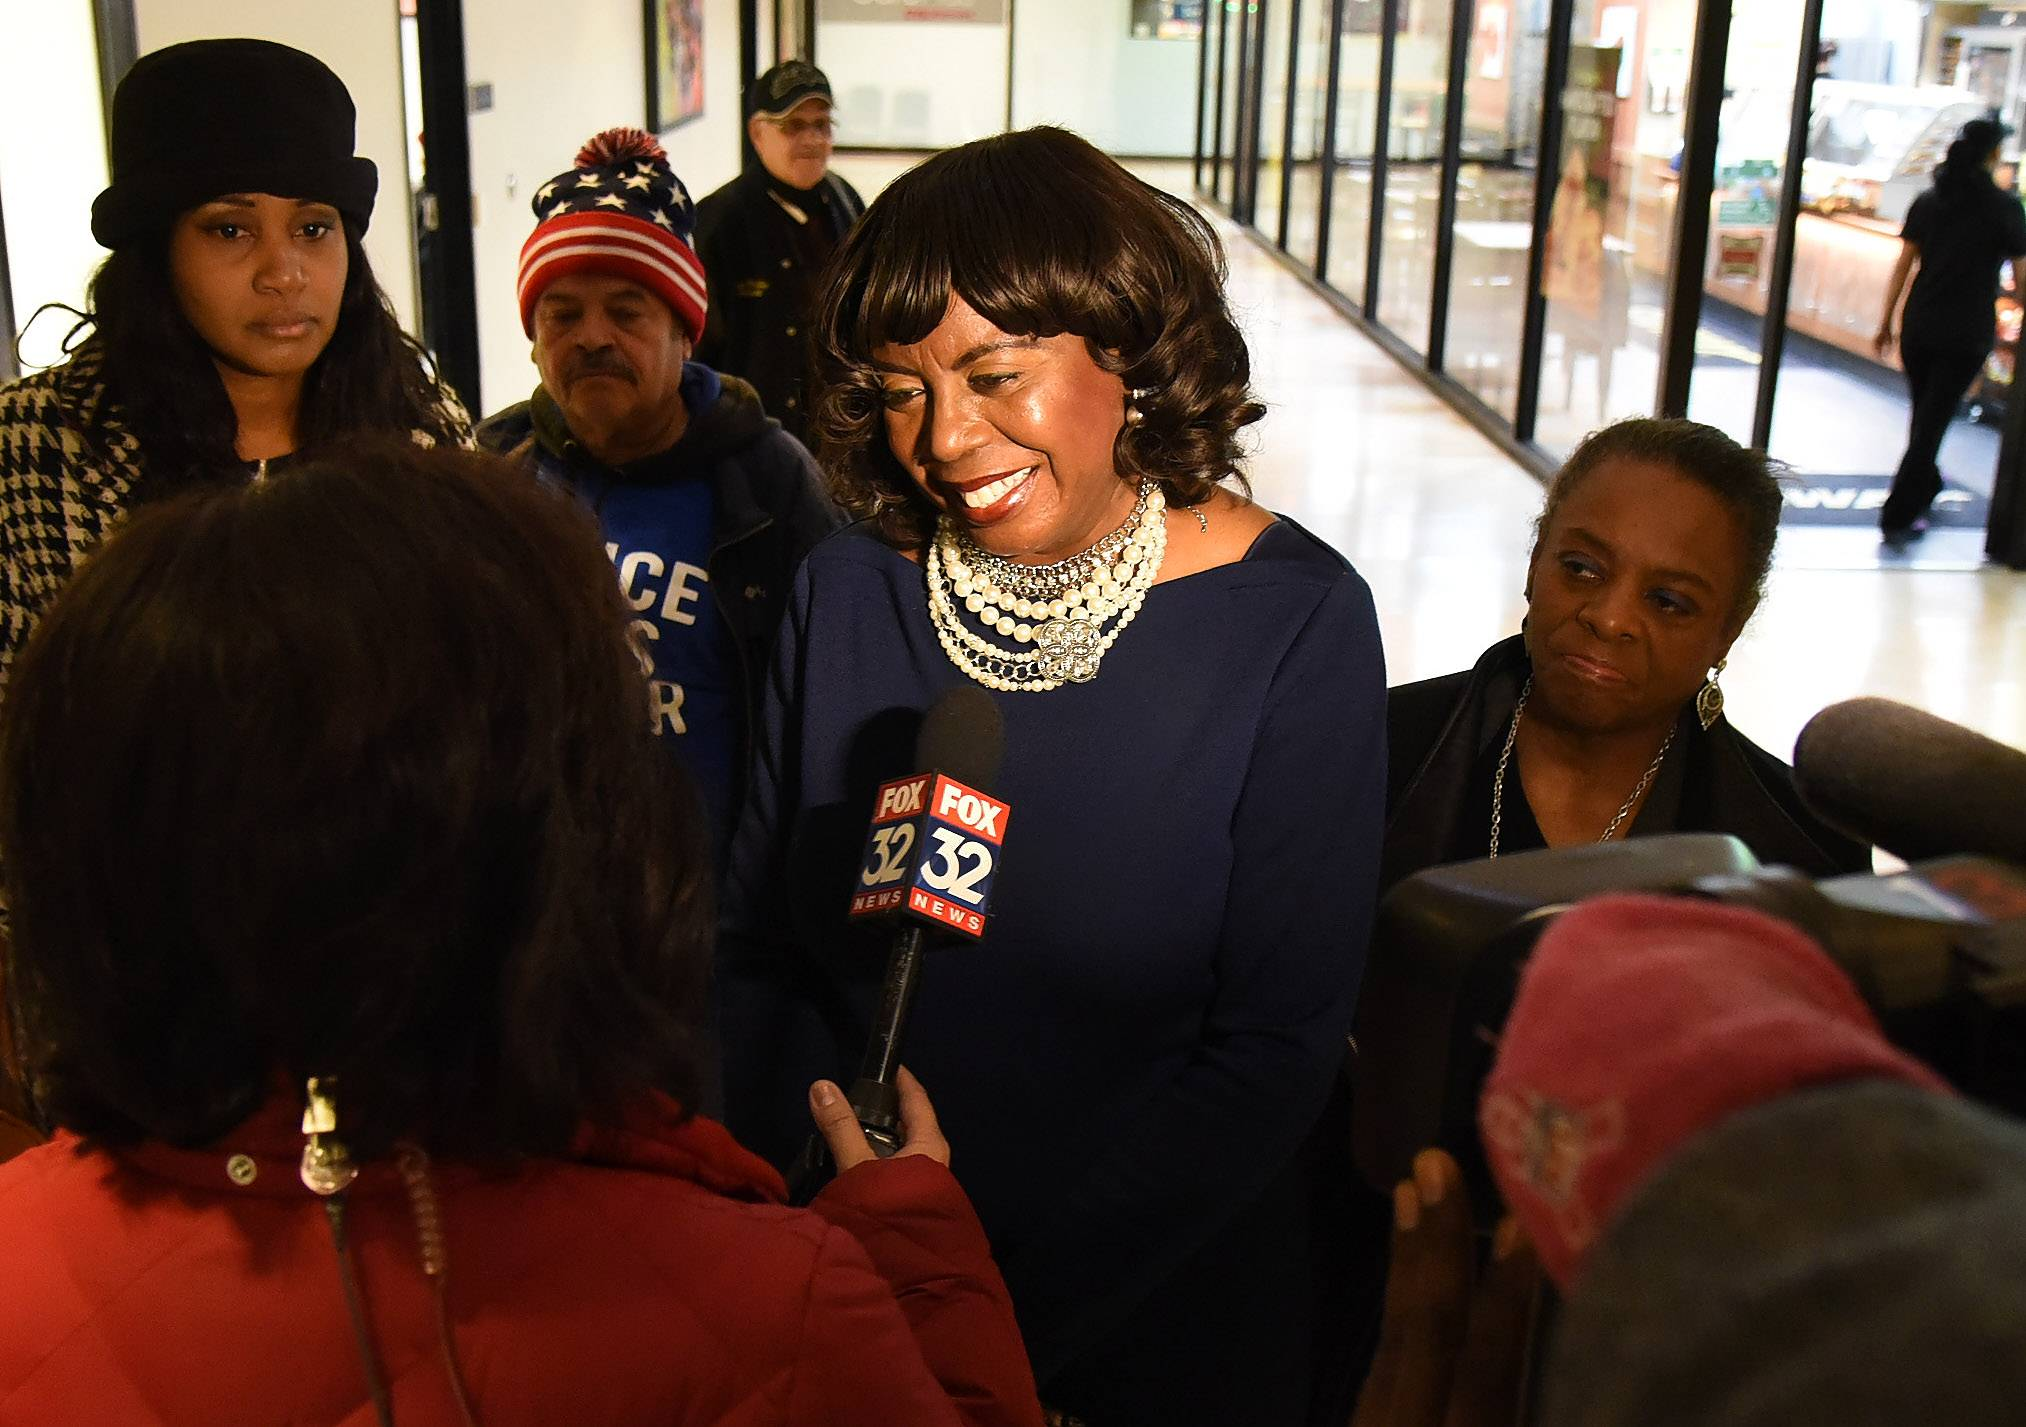 Cook County circuit court Clerk Dorothy Brown speaks to the media after filing nominating papers Monday morning at the Cook County Clerk's office in Chicago.